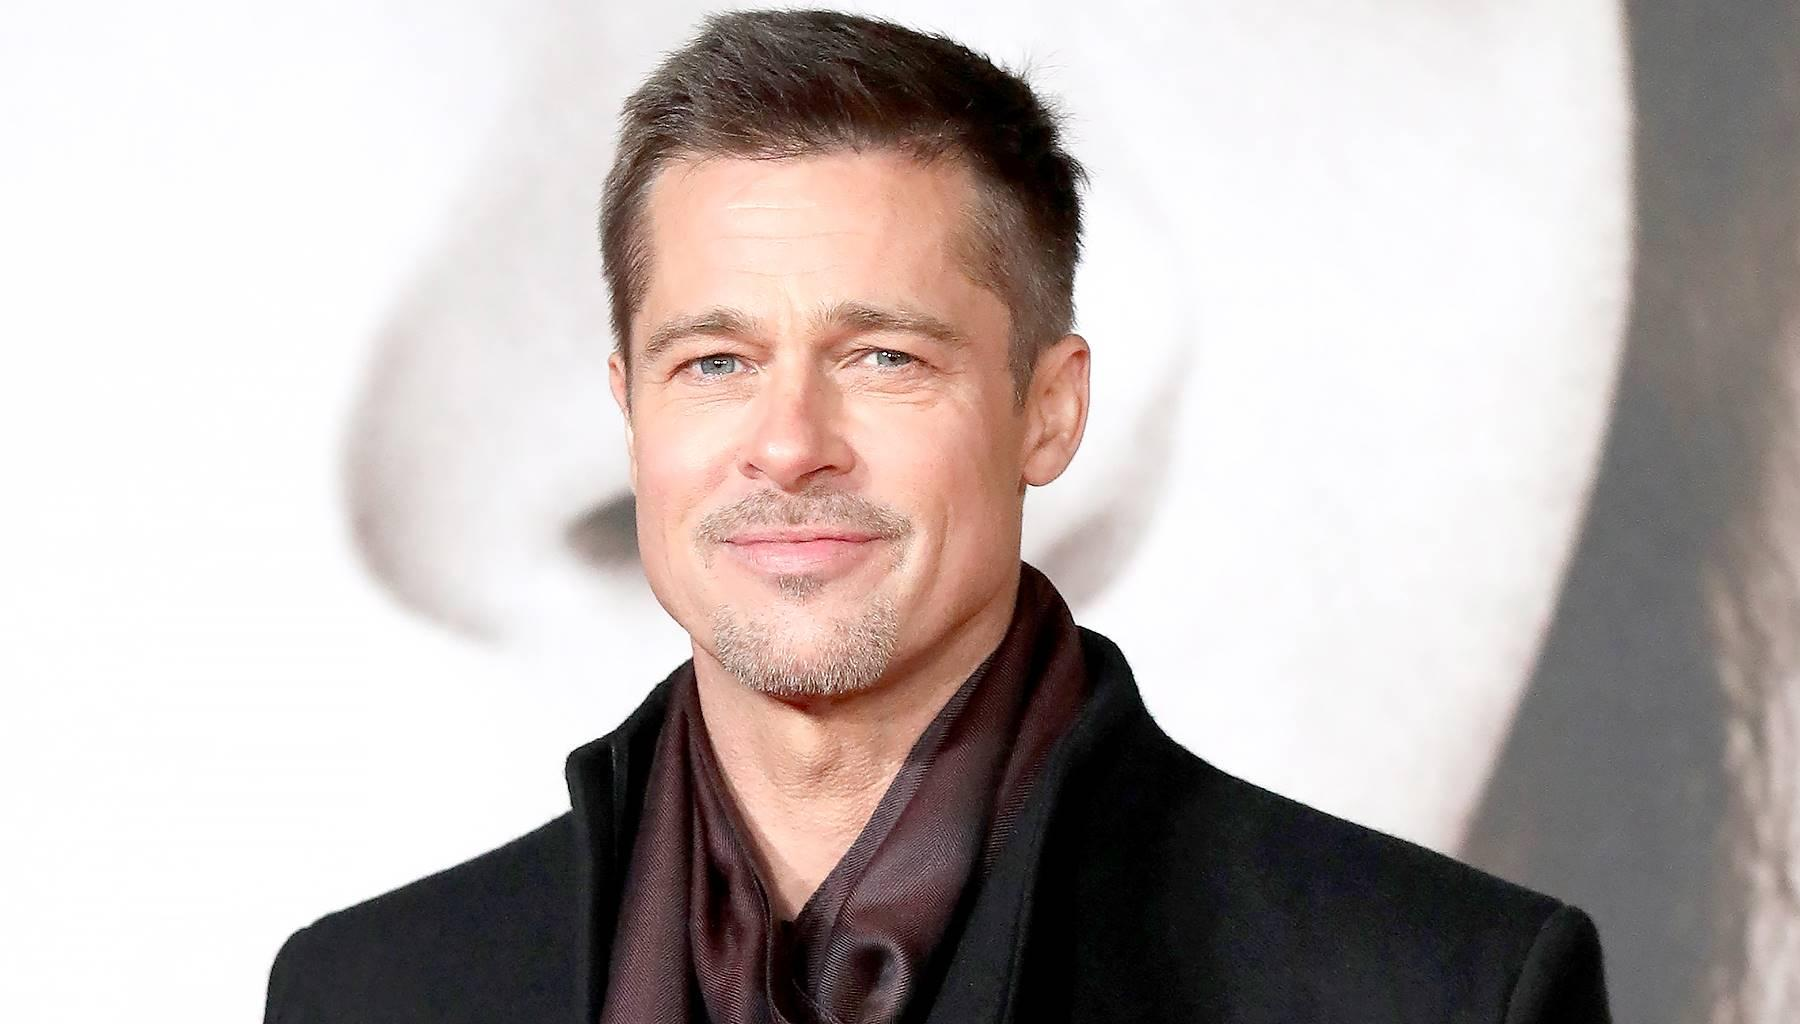 Brad Pitt Finds Some Solace After Getting His Heart Broken Again On Christmas -- Is Angelina Jolie To Blame?